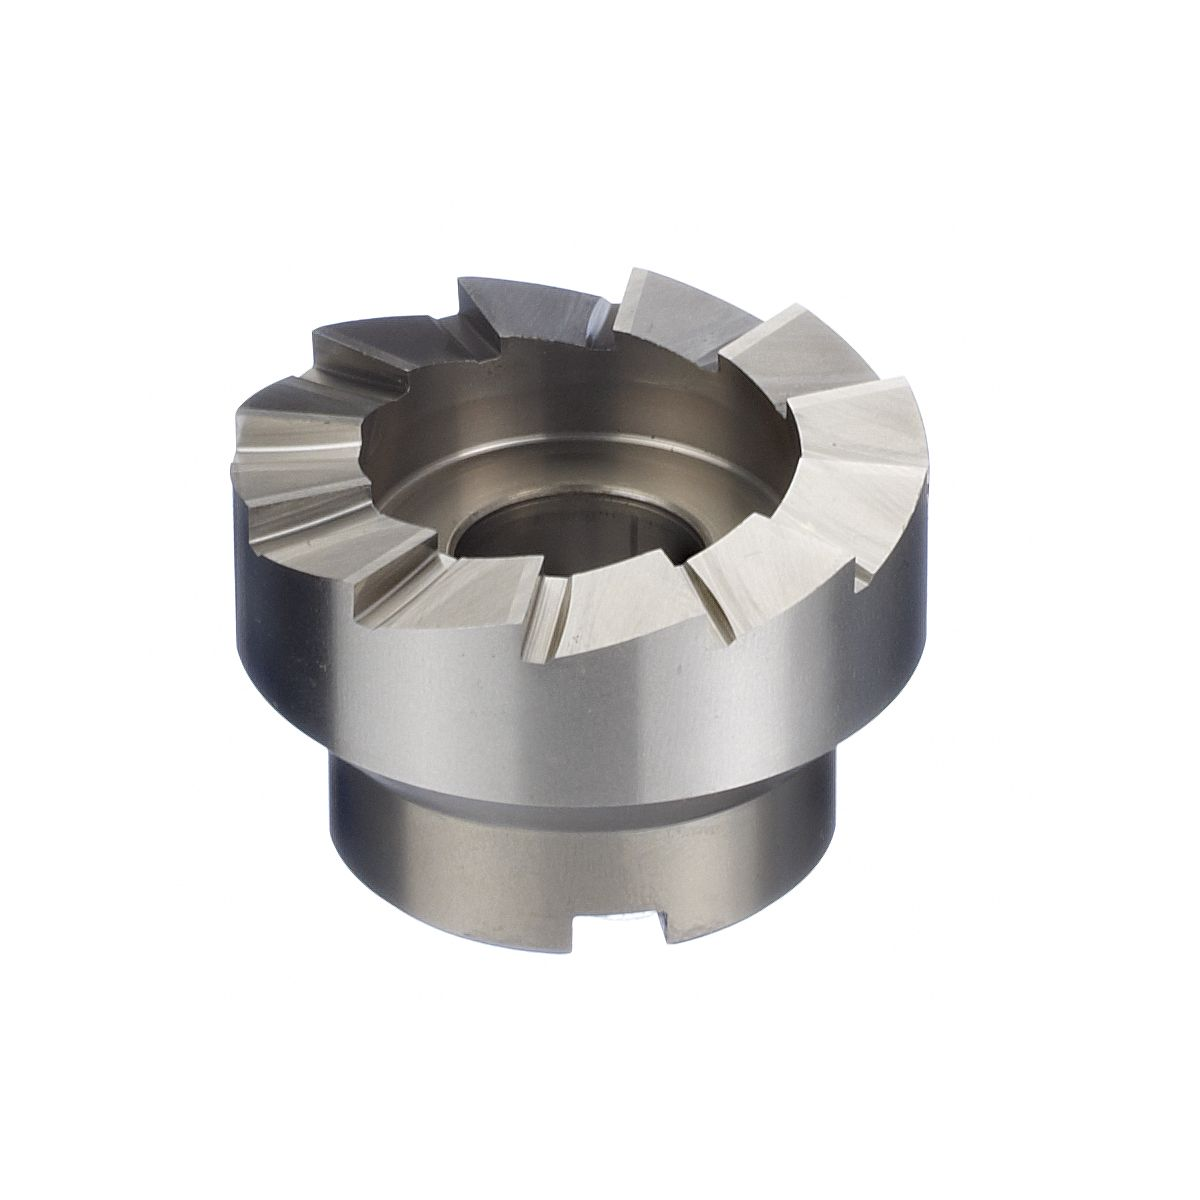 Replacement cutter head for crankset cutting tool